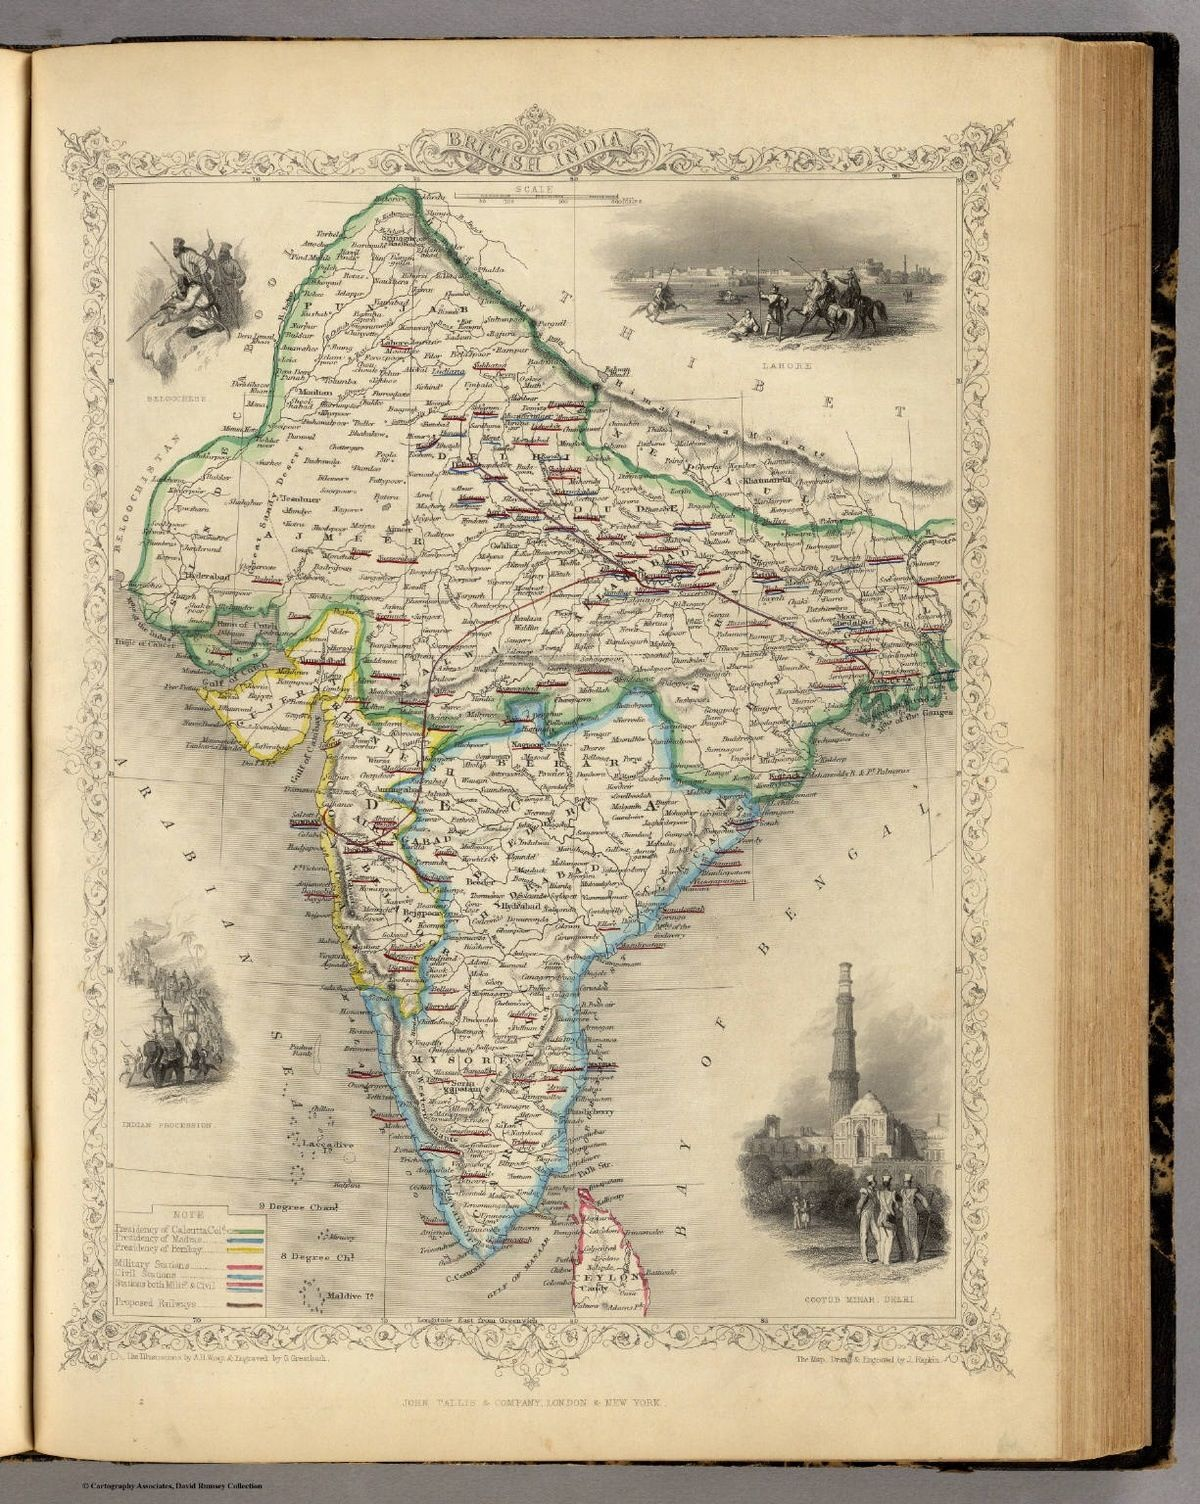 Old map of india india pinterest india and history old map of india gumiabroncs Images